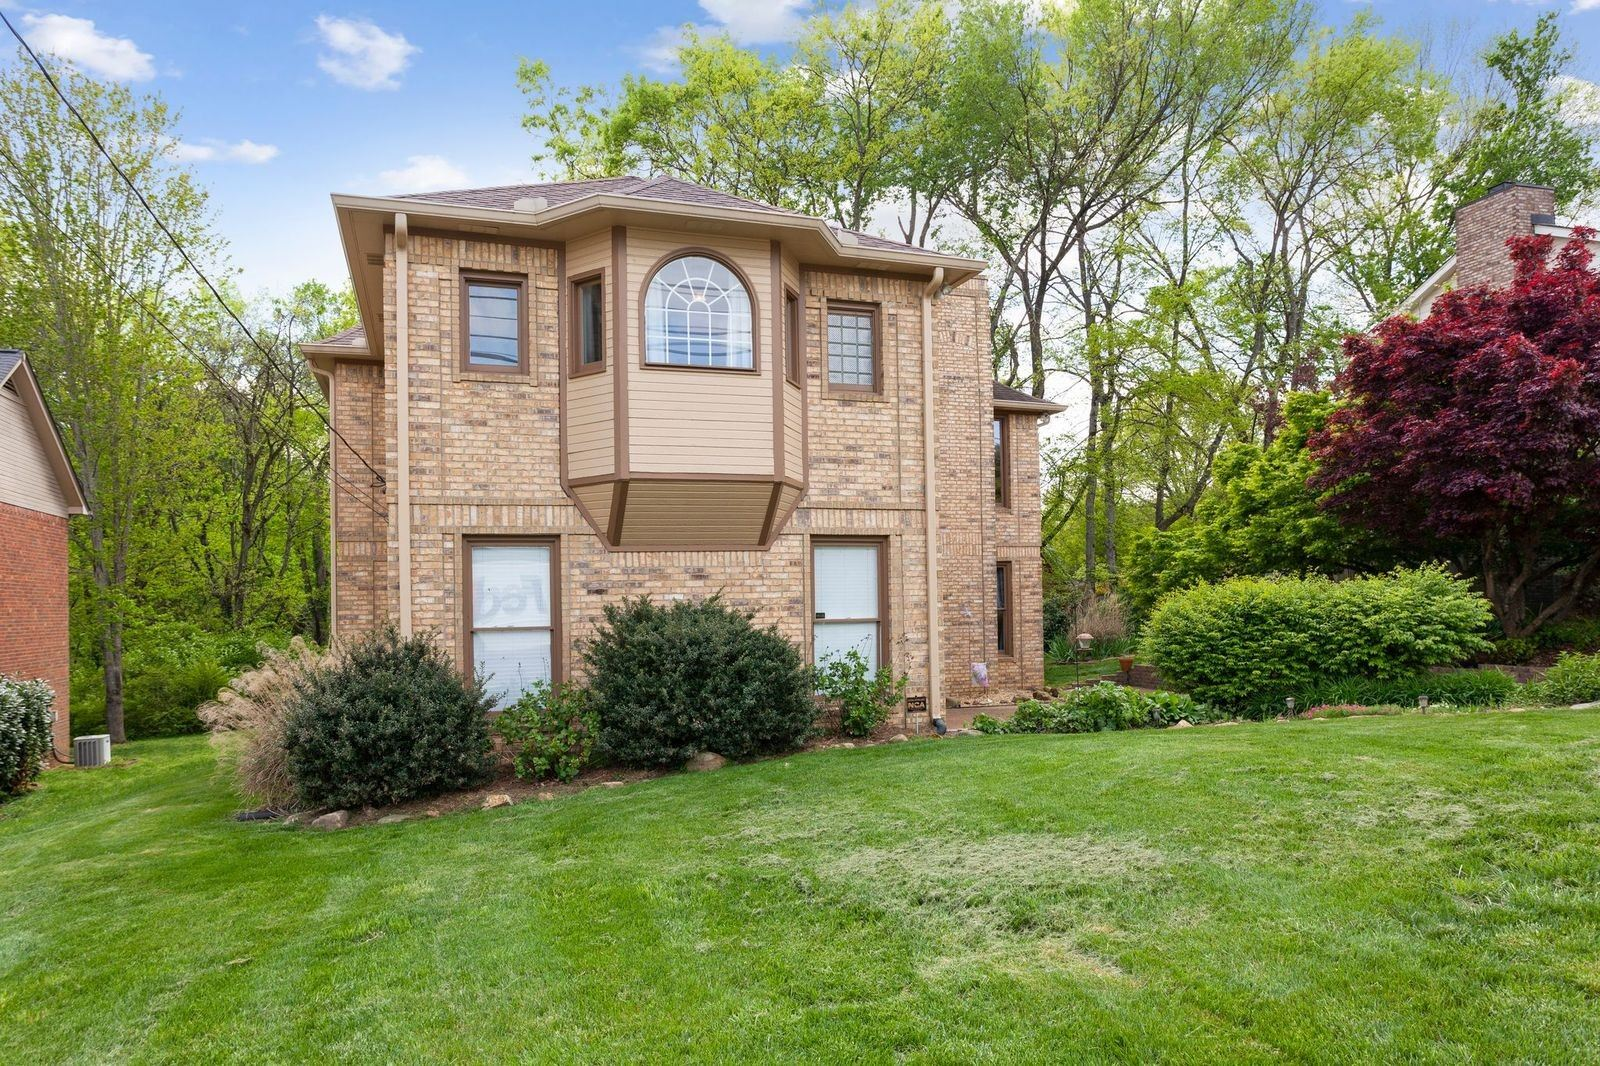 Photo of 7025 Poplar Creek Trace, Nashville, TN 37221 (MLS # 2246425)